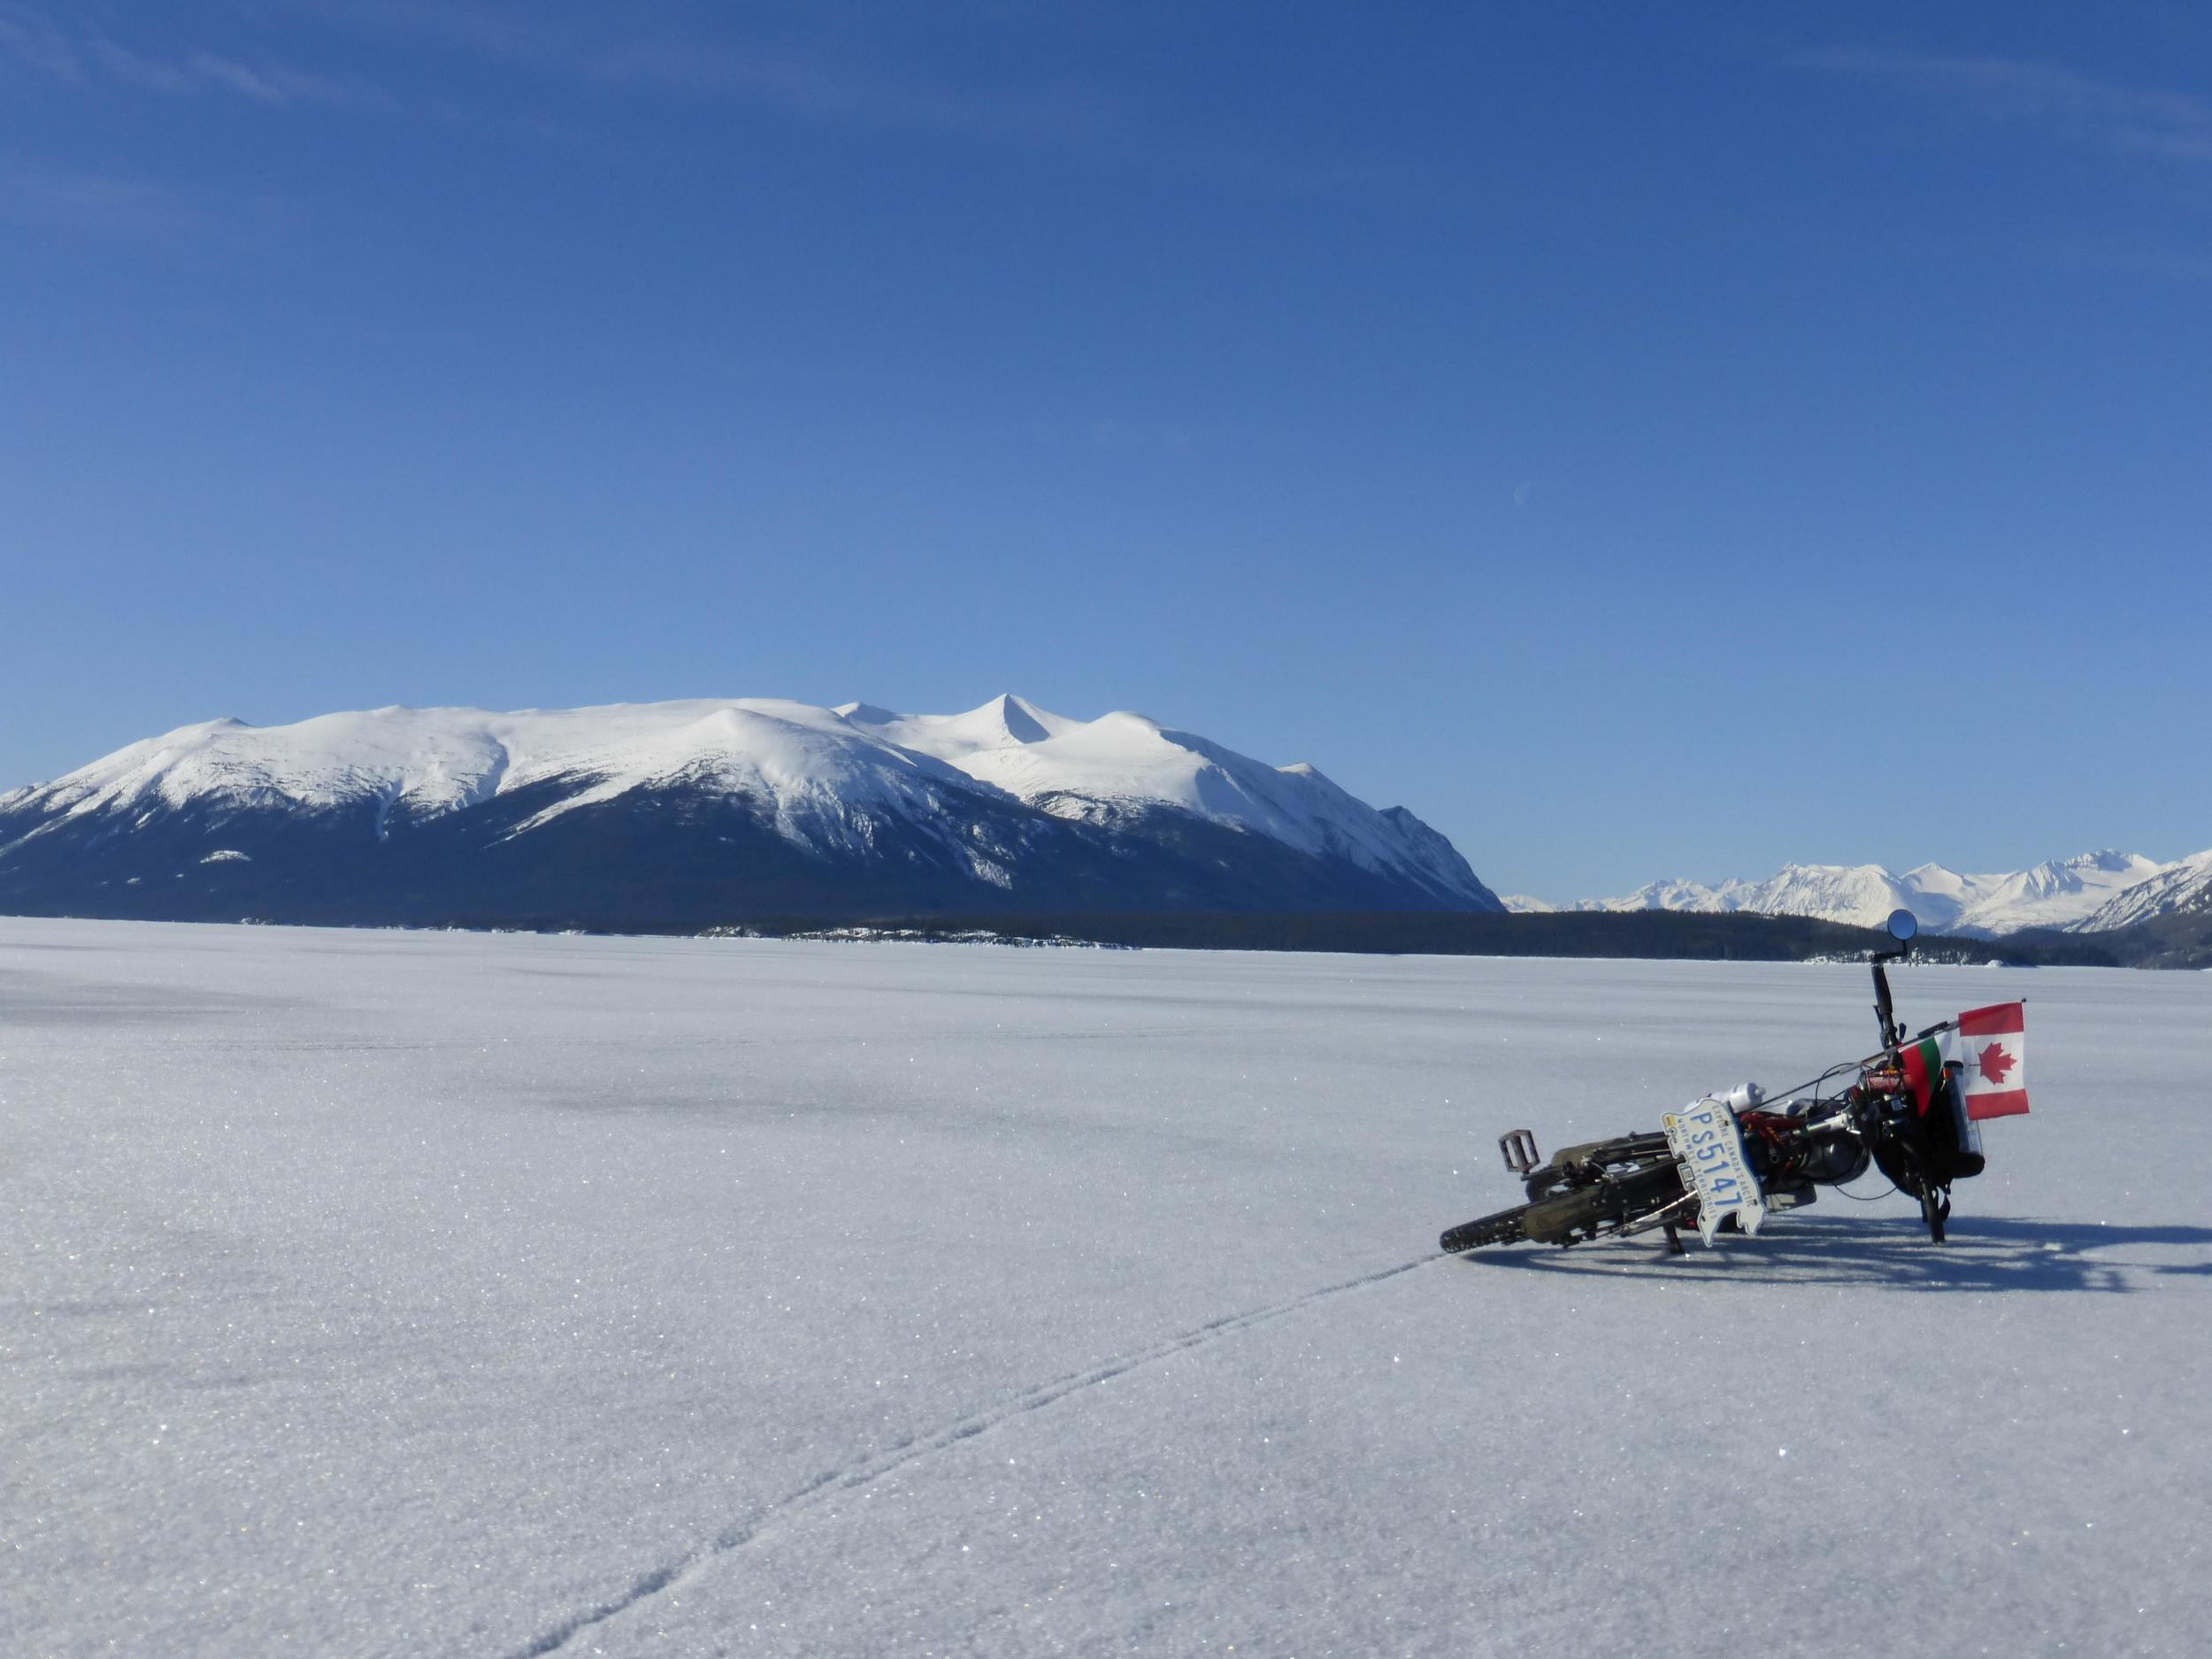 (Mount Theresa). Atlin lake is the biggest freshwater lake in British Columbia. Riding on the snow covered ice isn't exactly easy but 75km seems doable. I only have a little bit of water and Oreos for food.